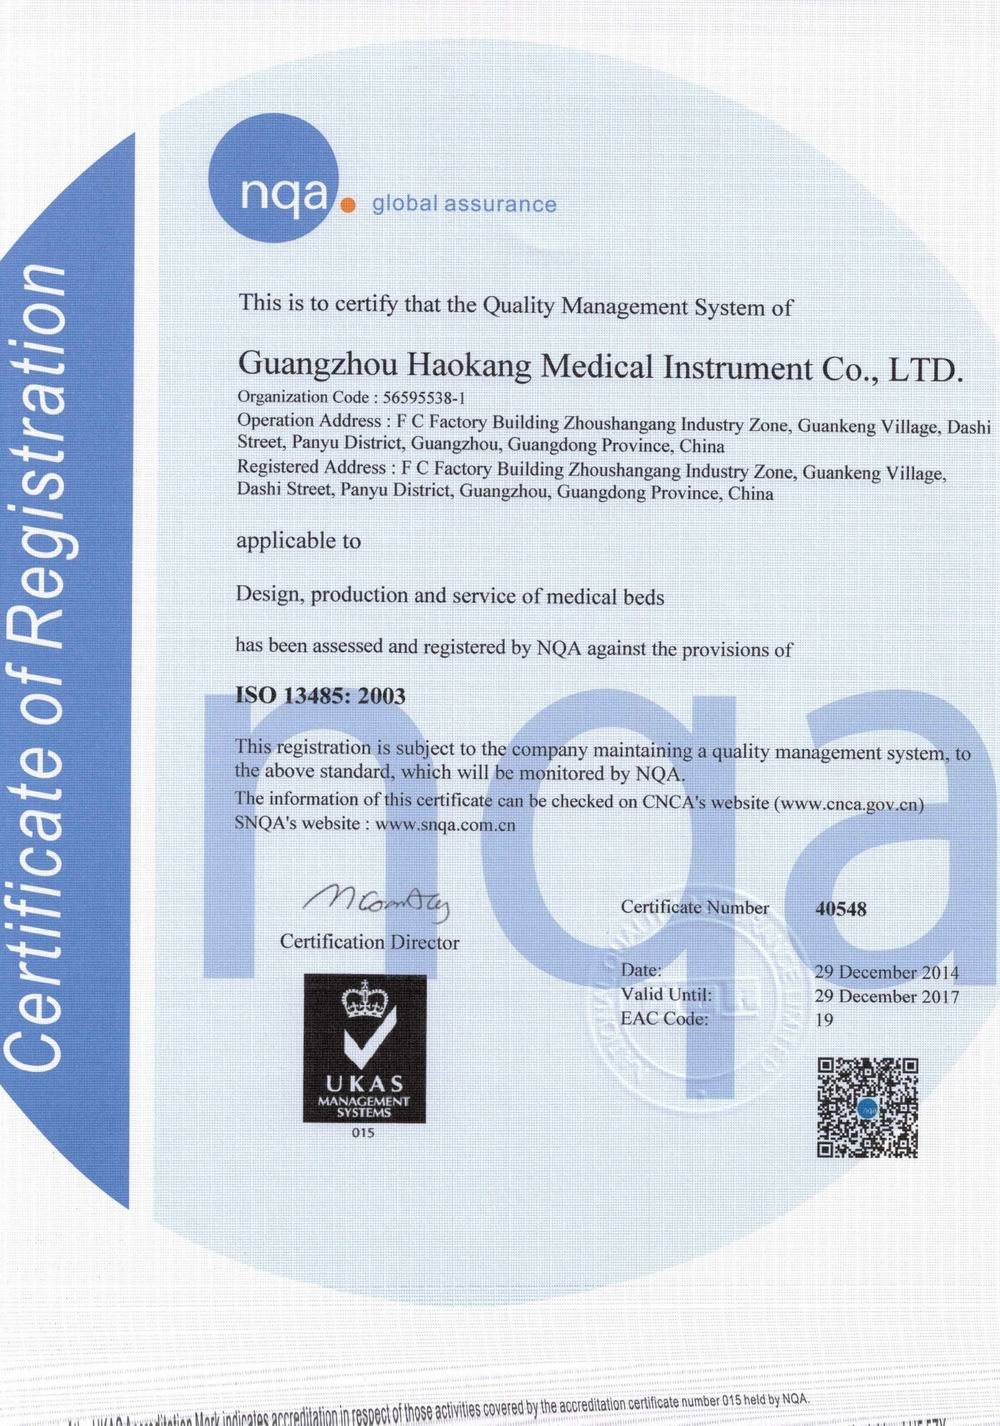 ISO13485:2003 Certificate of Quality Management System